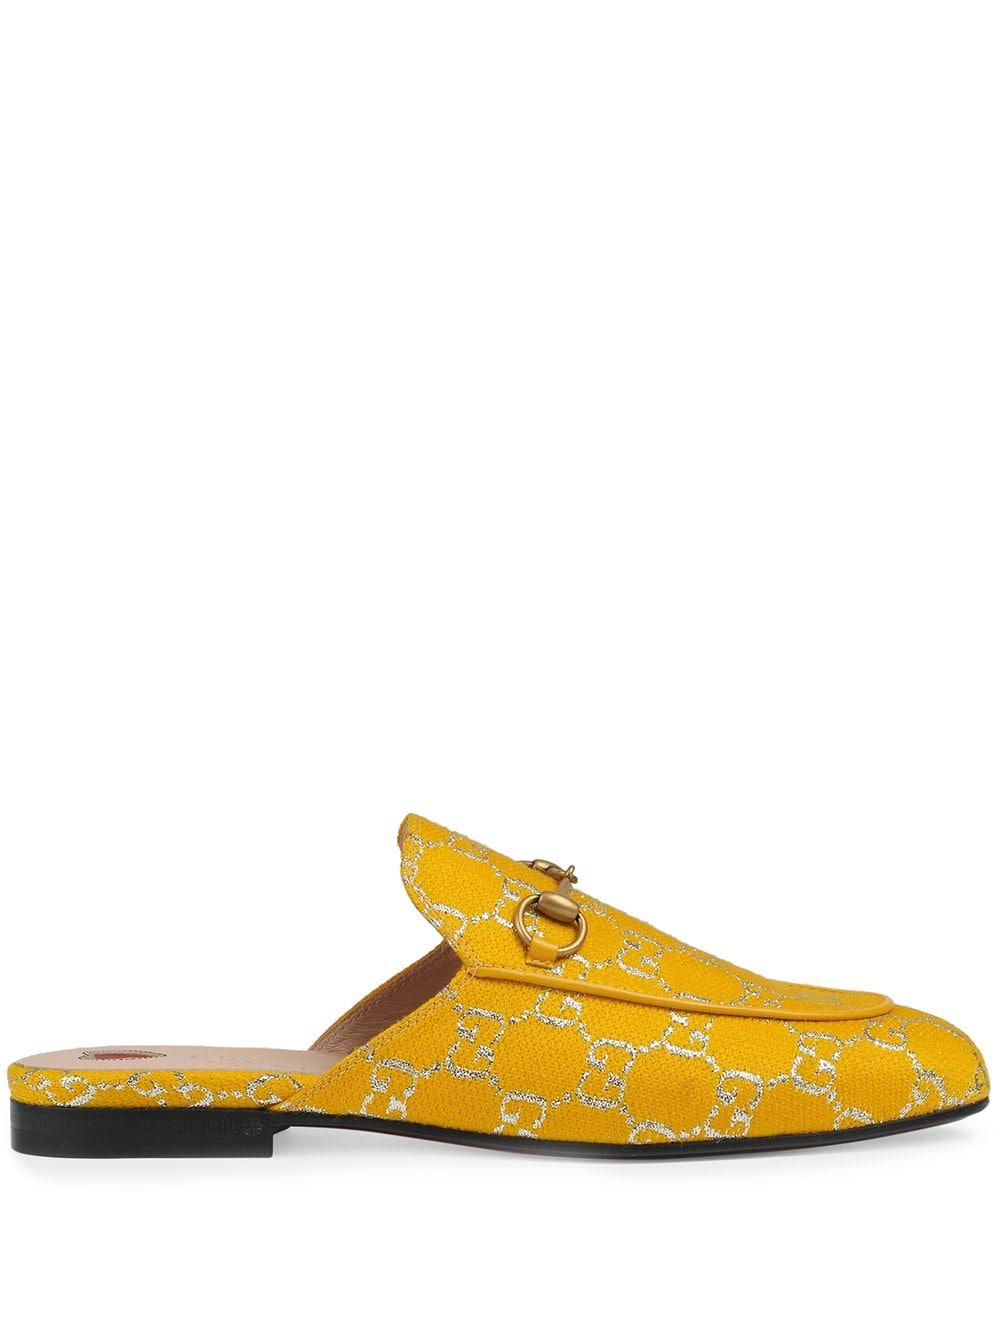 Princetown Donna Slipper - Yellow